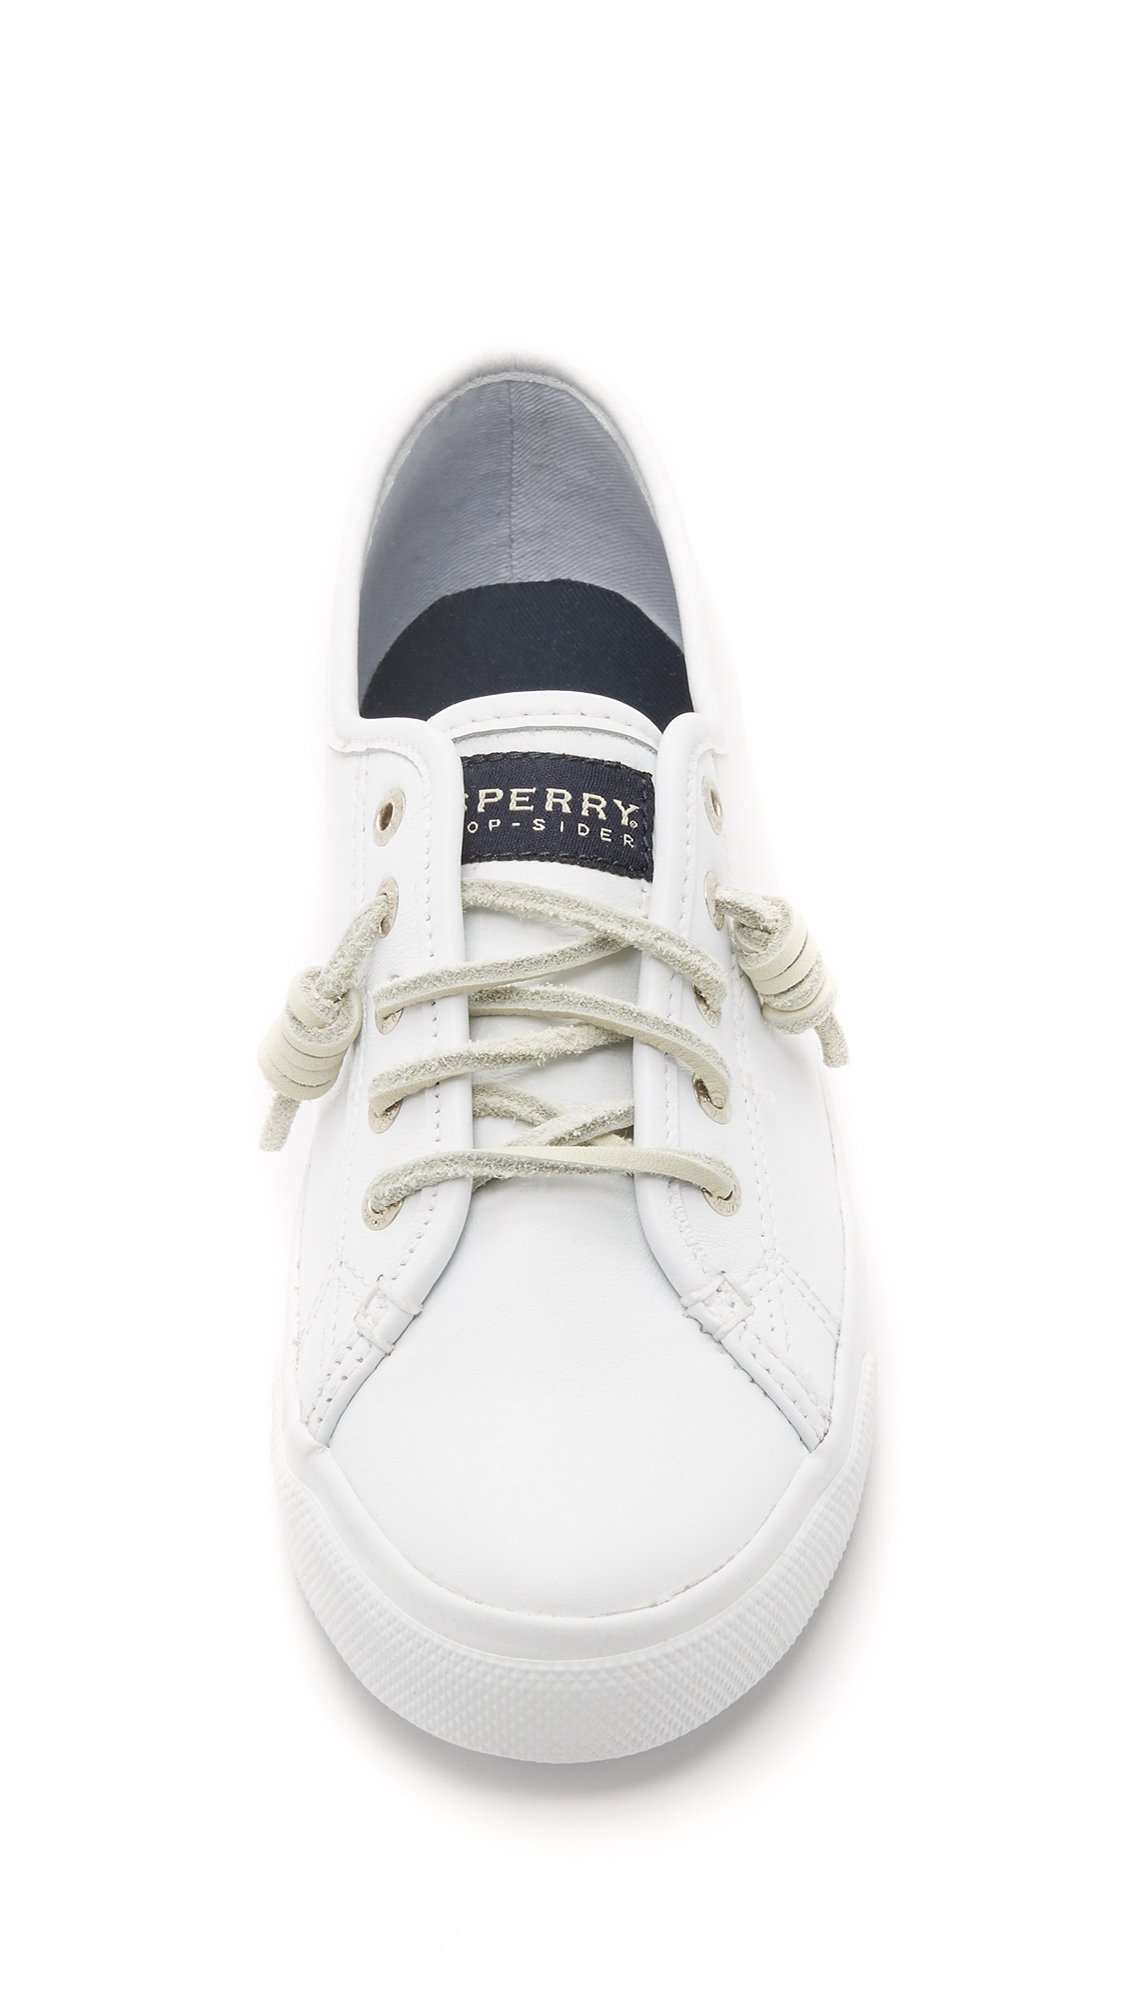 Sperry Top-Sider Seacoast Leather Sneakers in White